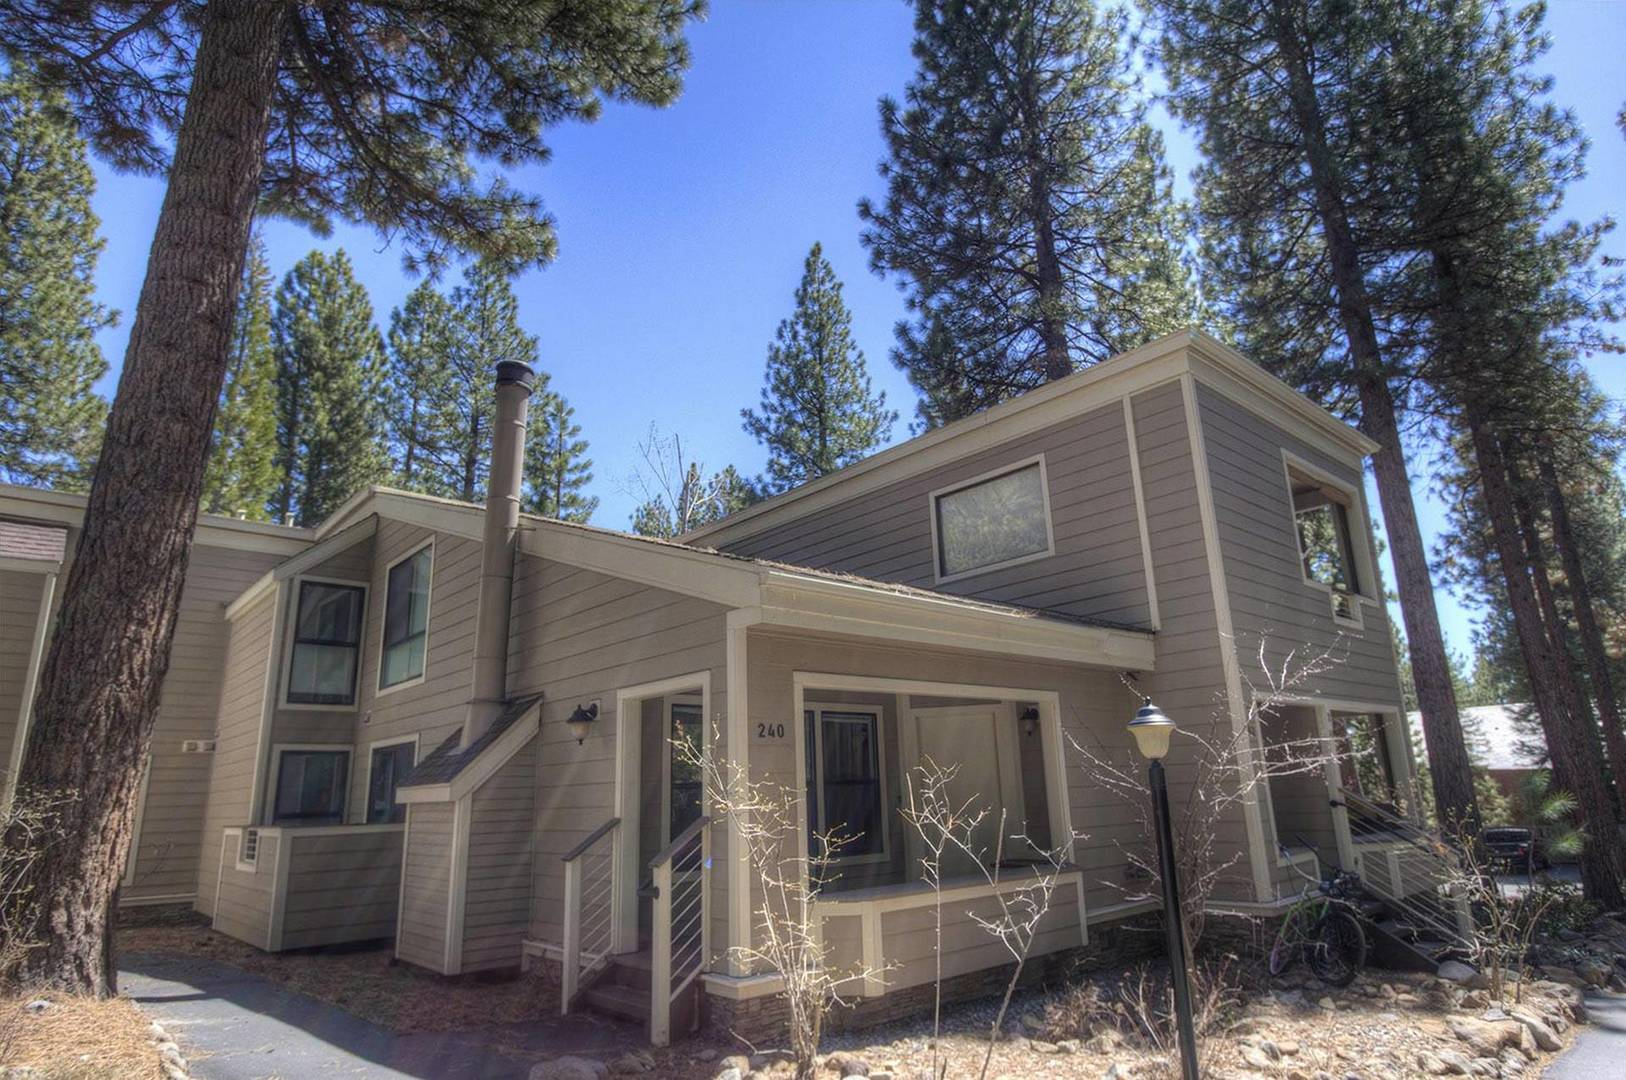 fpc0640 Incline Village Vacation Rental